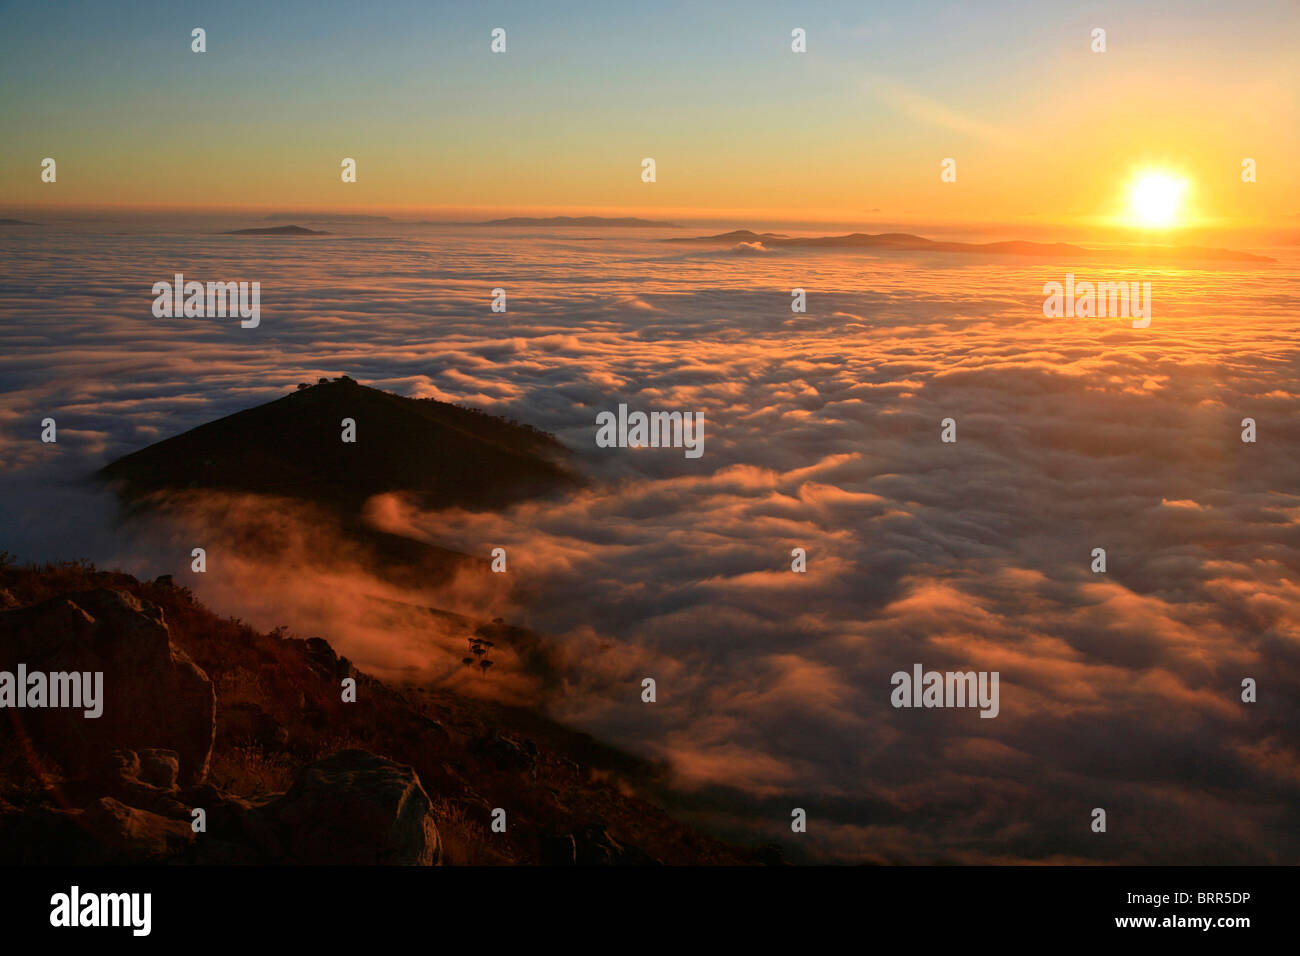 Sunrise from the top of Lions Head with clouds below covering the city - Stock Image